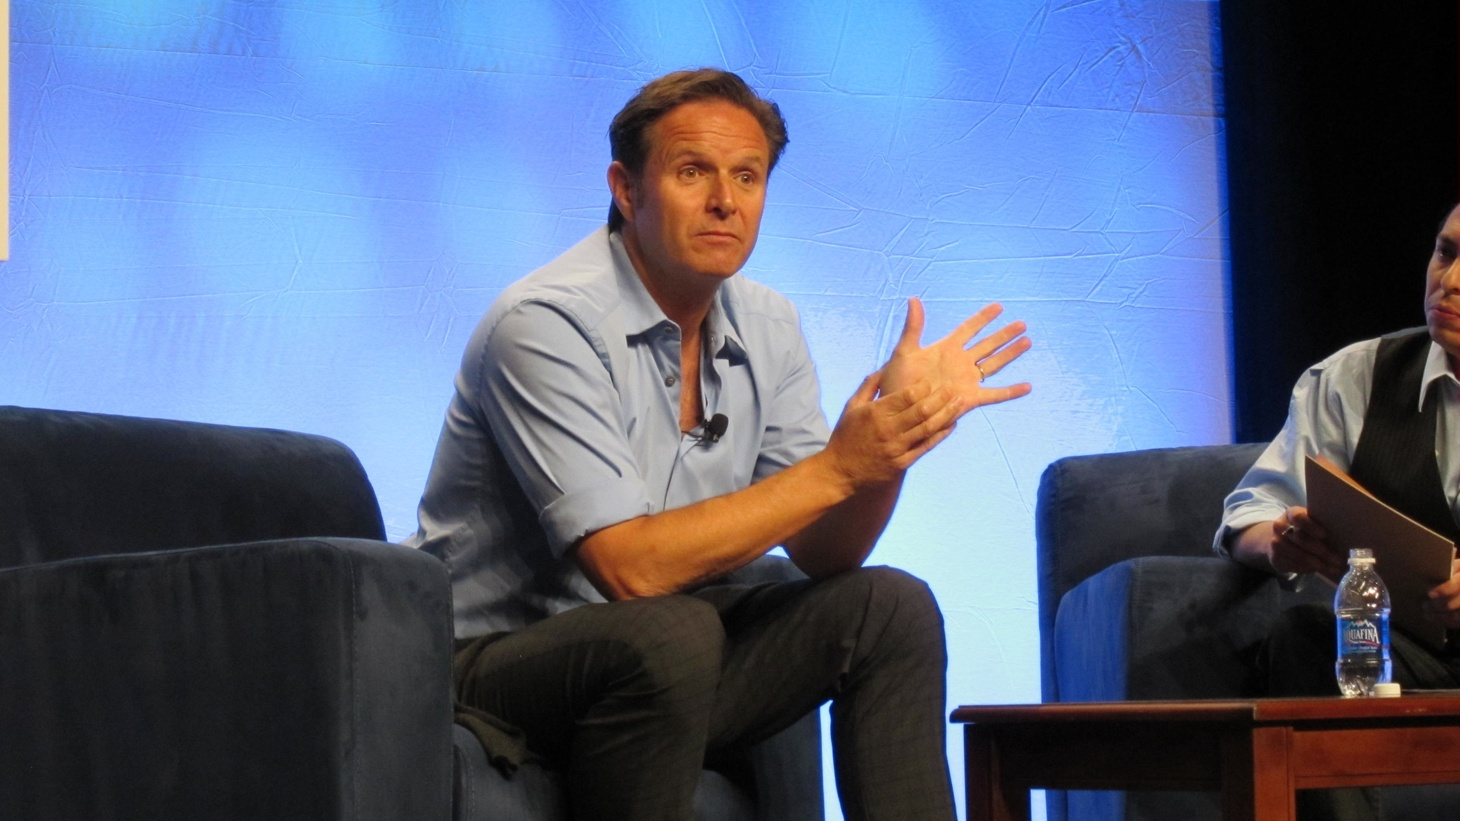 """With hits like """"Survivor"""" and """"The Apprentice,"""" Mark Burnett is a legend of reality TV. But his reign at MGM has been disruptive and devoid of hits."""